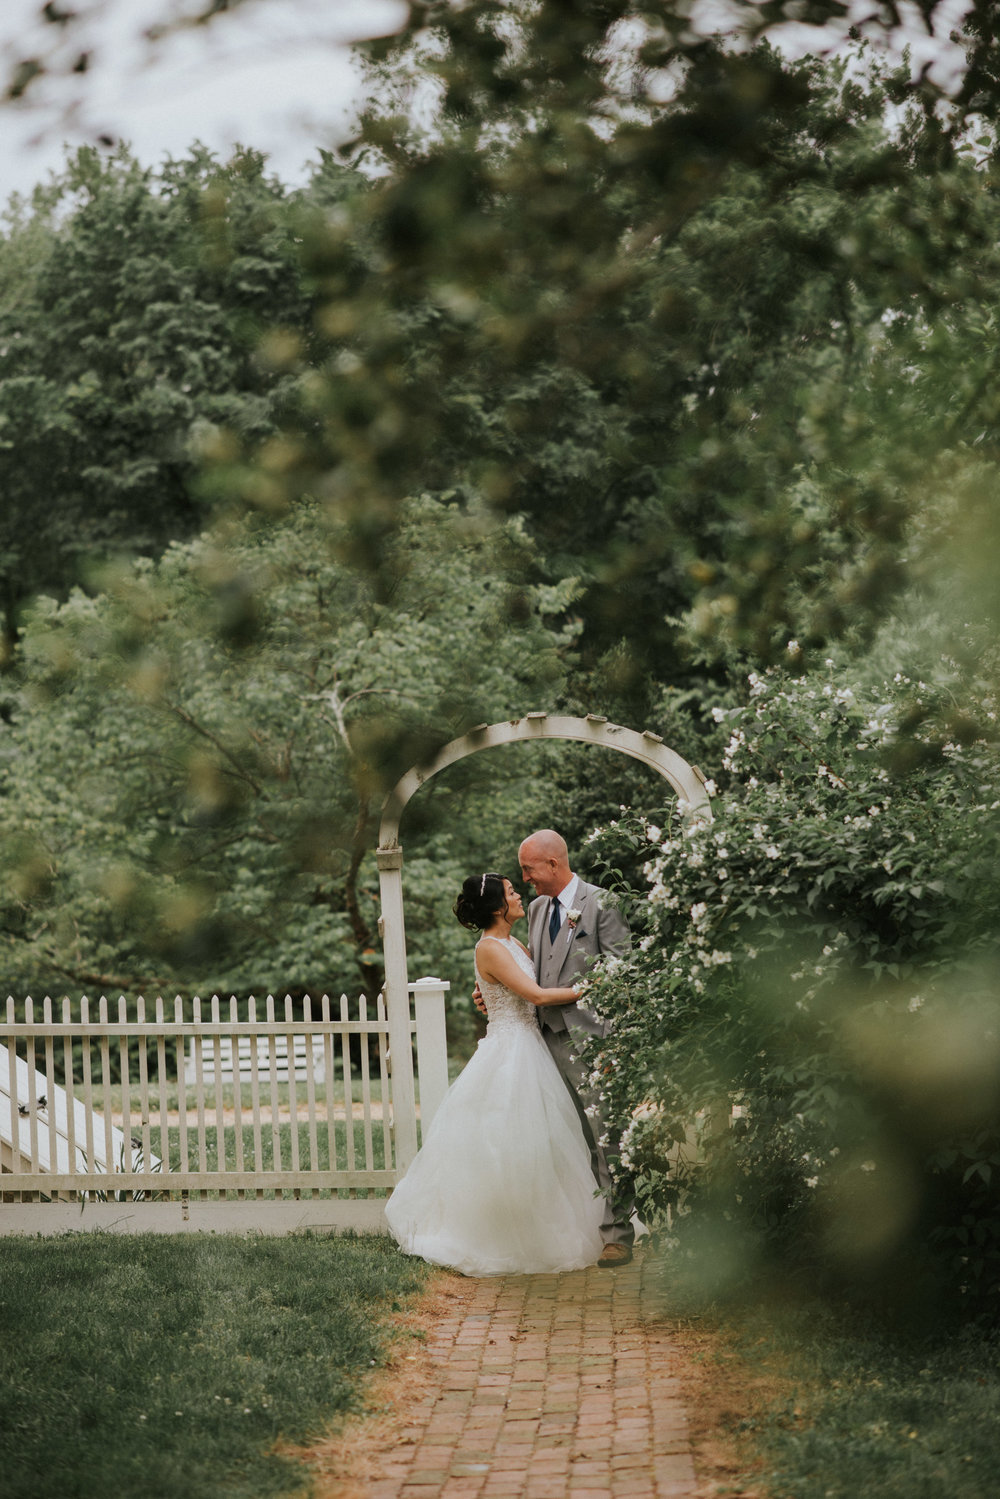 Wedding Monmouth County Walnford Park Allentown NJ Rustic Nature 48.jpg